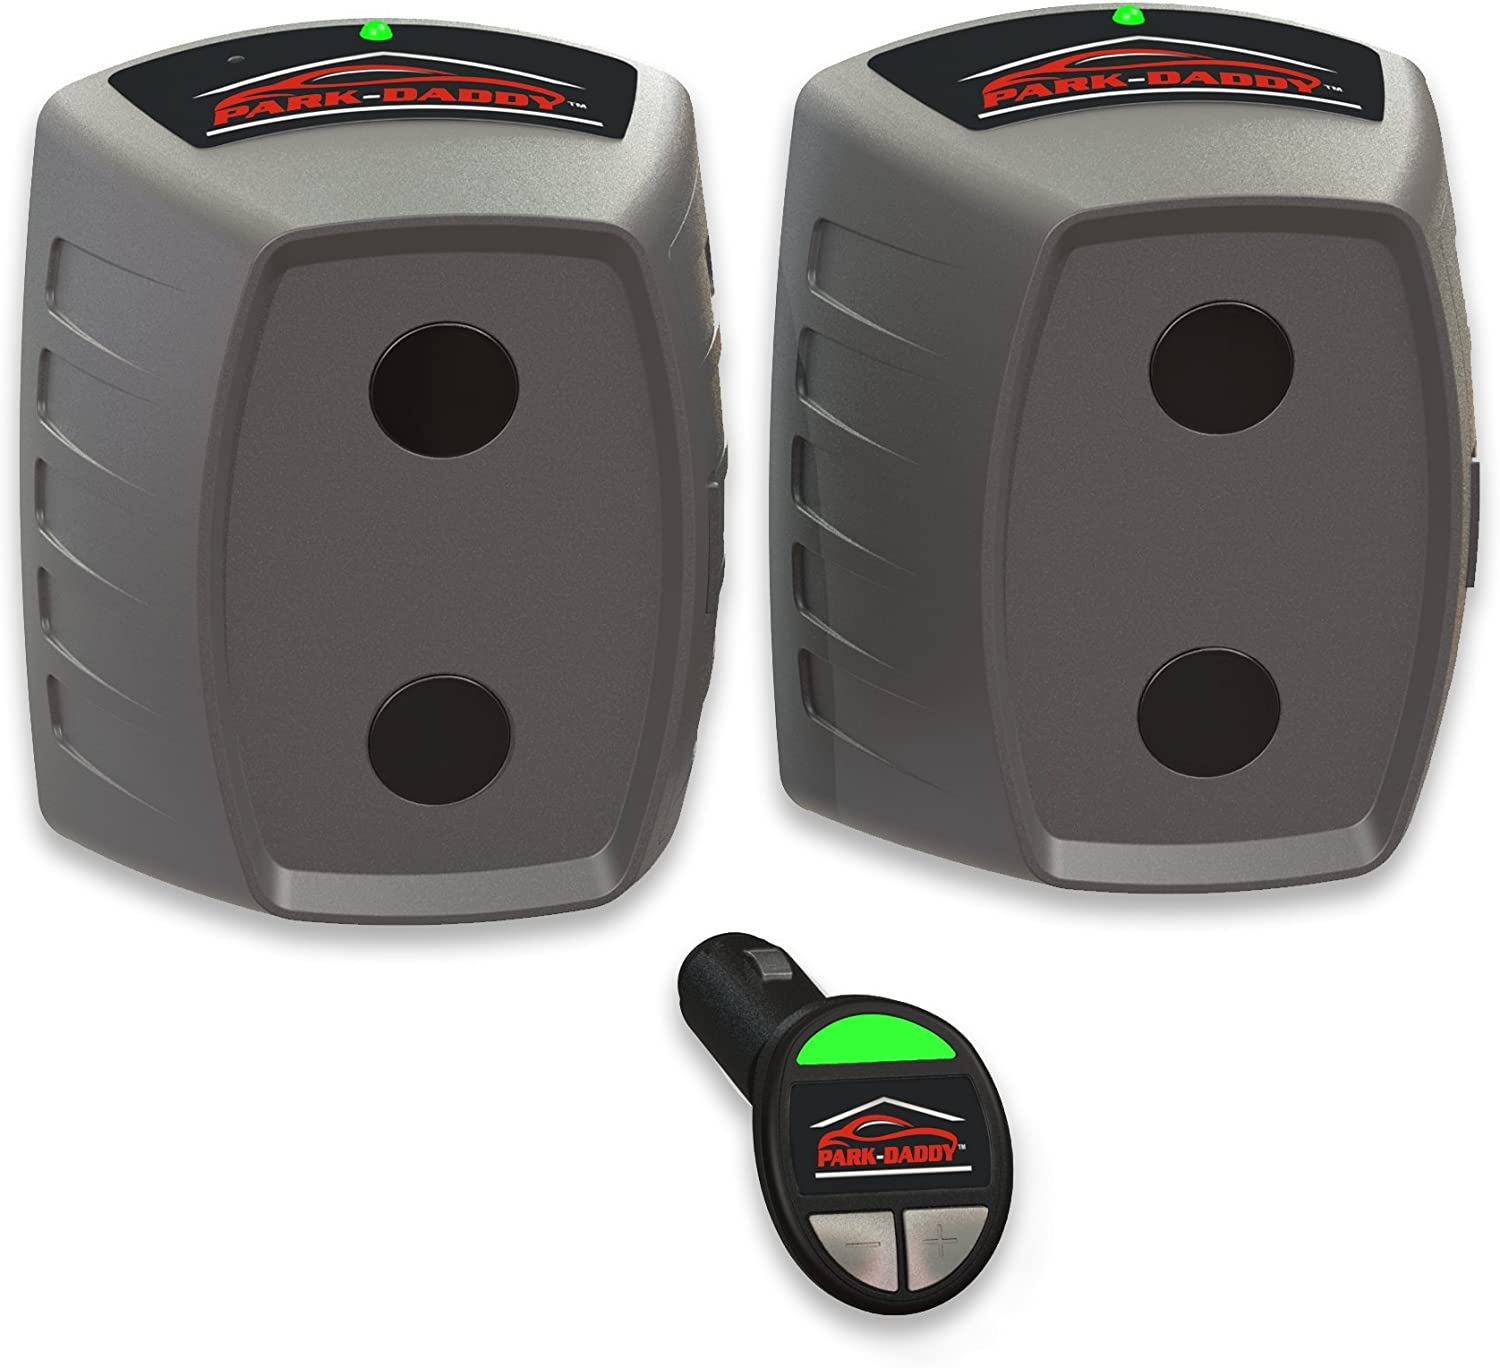 Park-Daddy PDY-50-AA Single-Vehicle Precision Garage Parking System